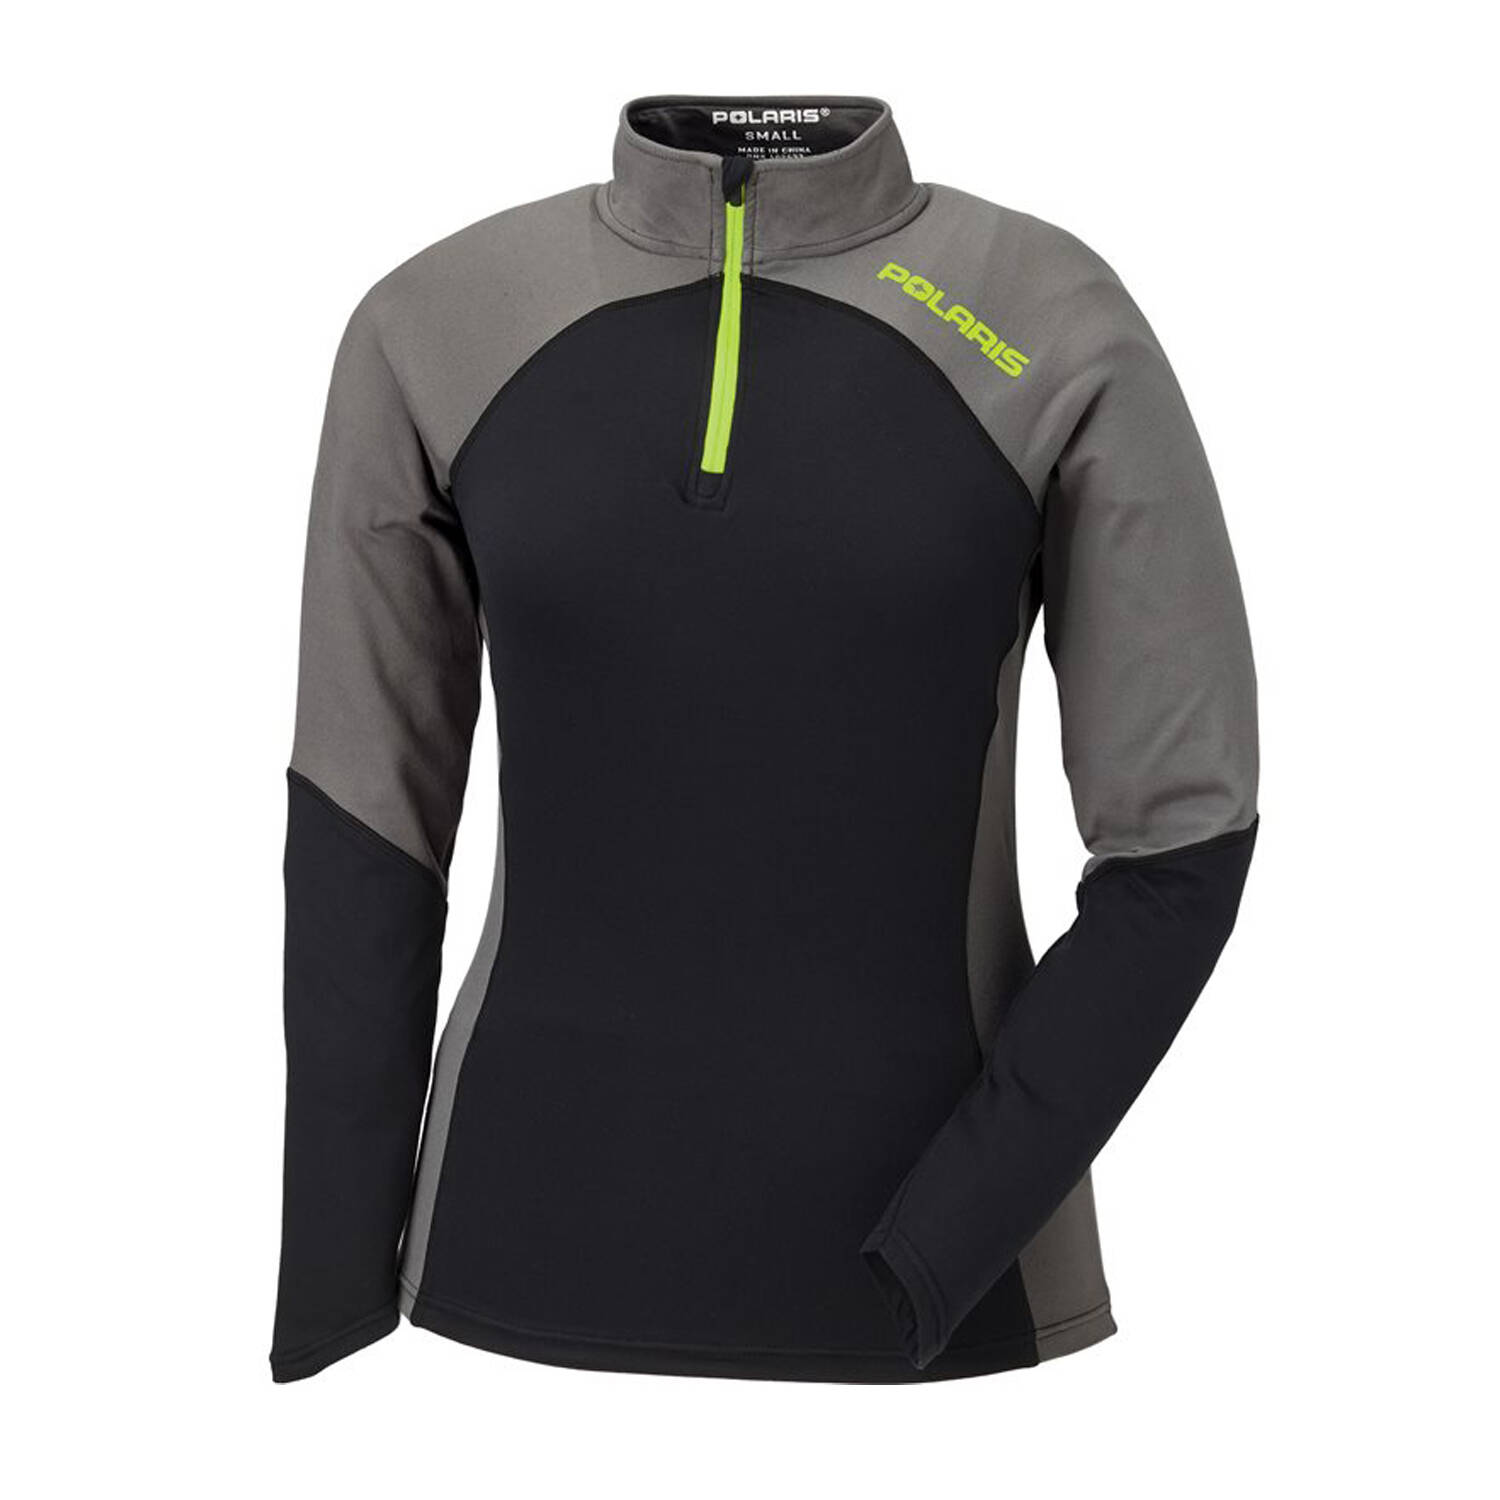 Women's Long-Sleeve Quarter-Zip Pullover with Lime Polaris® Logo, Black/Gray